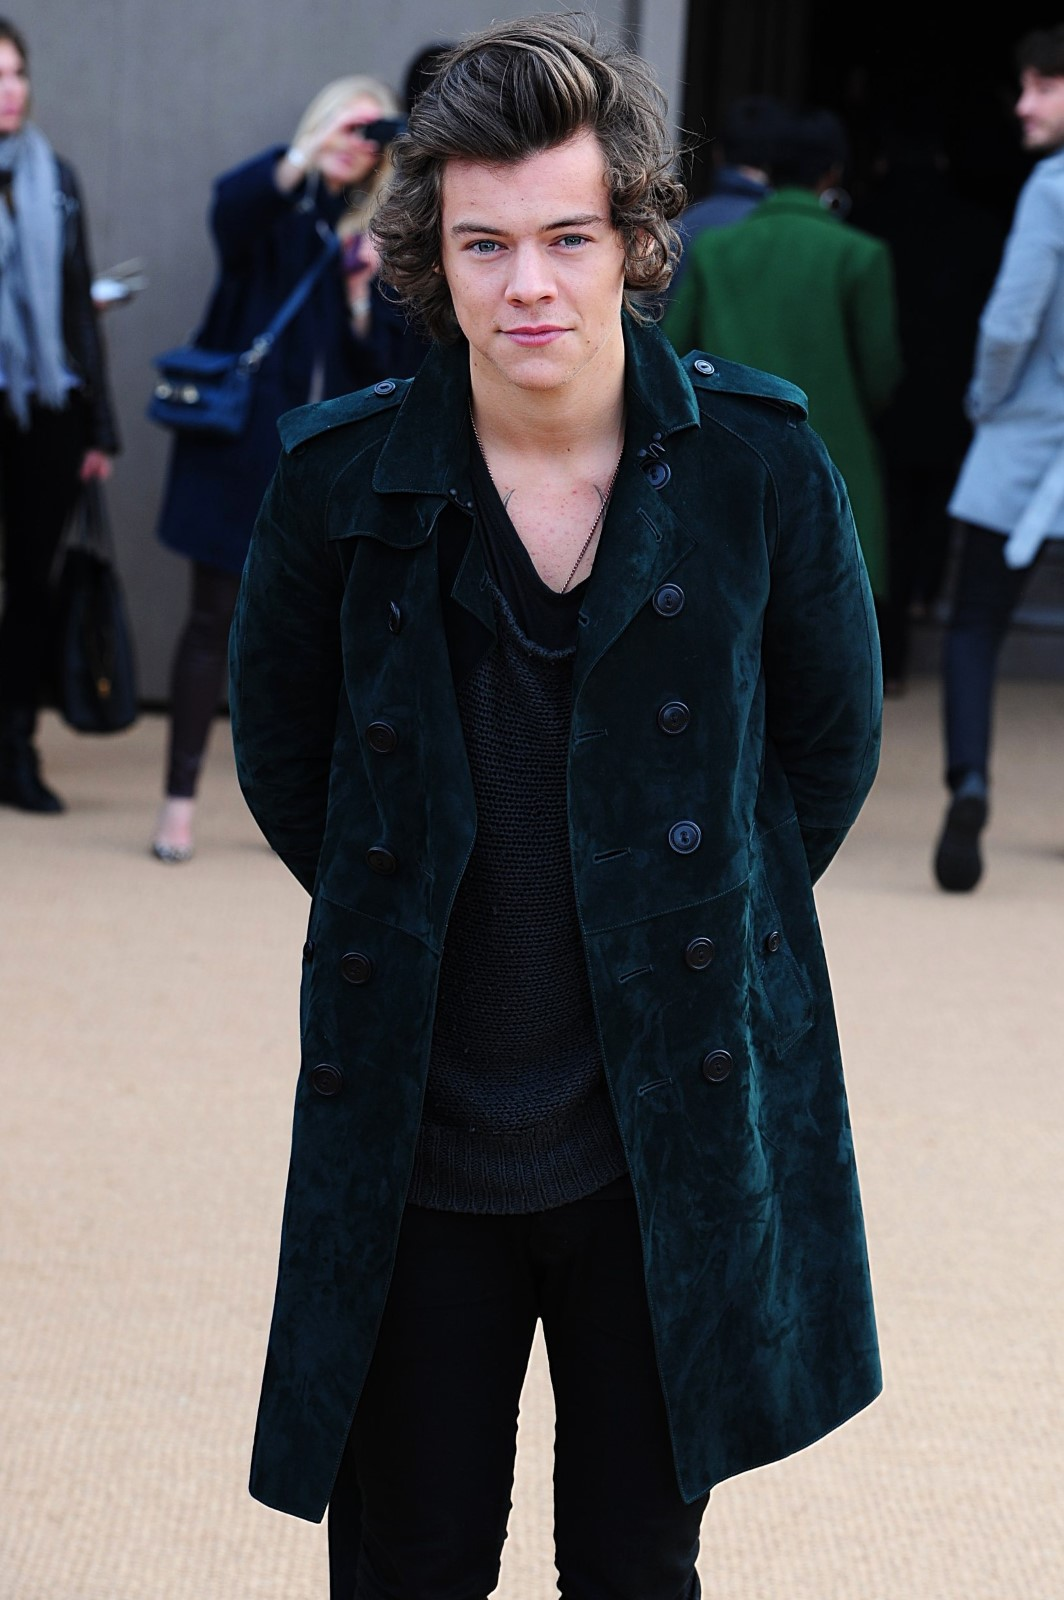 Harry styles at london fashion week Alan Beale's Core Vocabulary - F (1074 Words) - Many Things